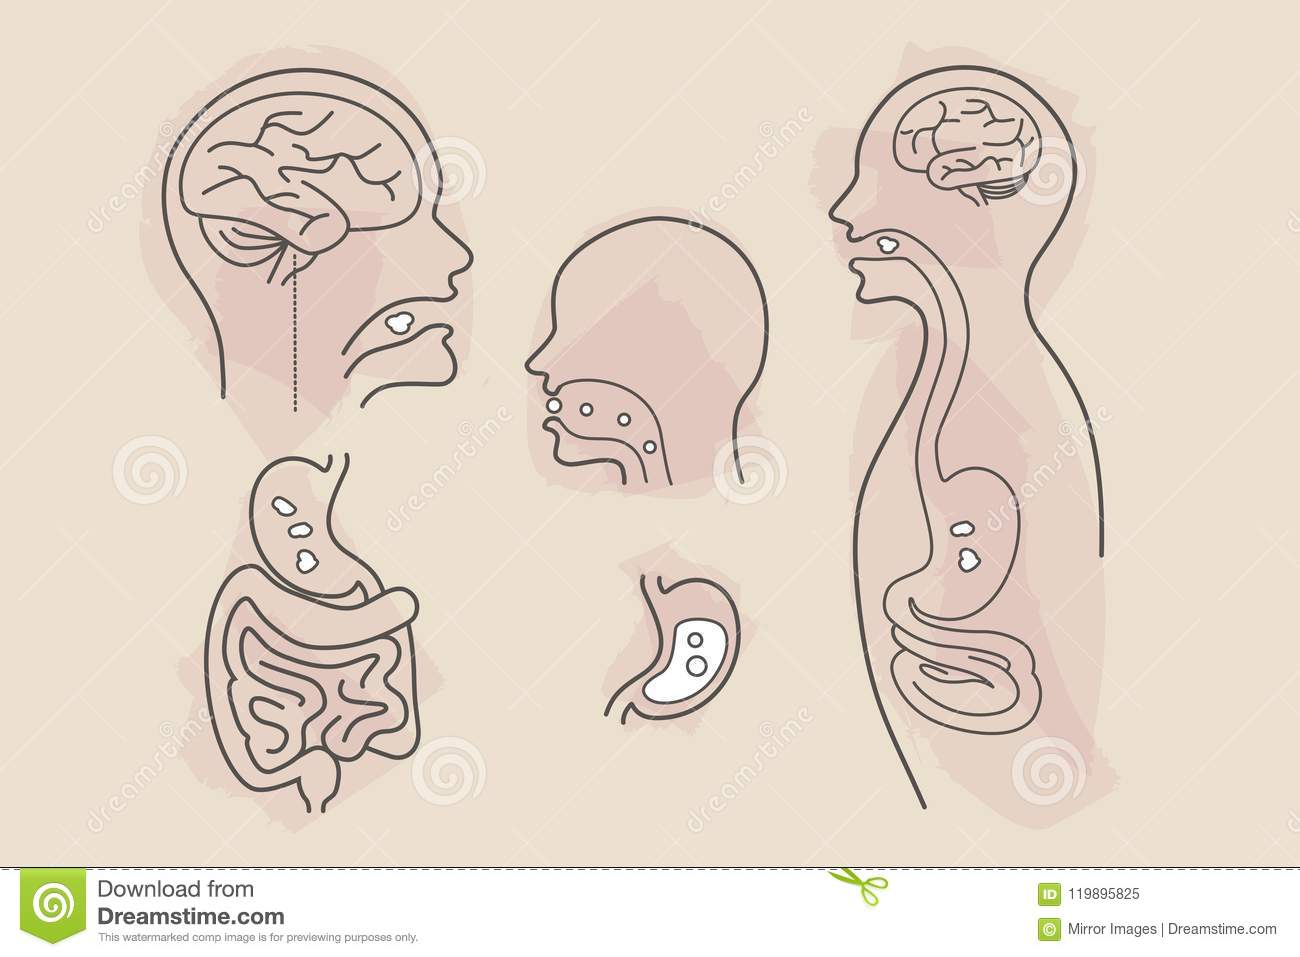 Digestive System Eating Food Vector Line Art With Color Splashes